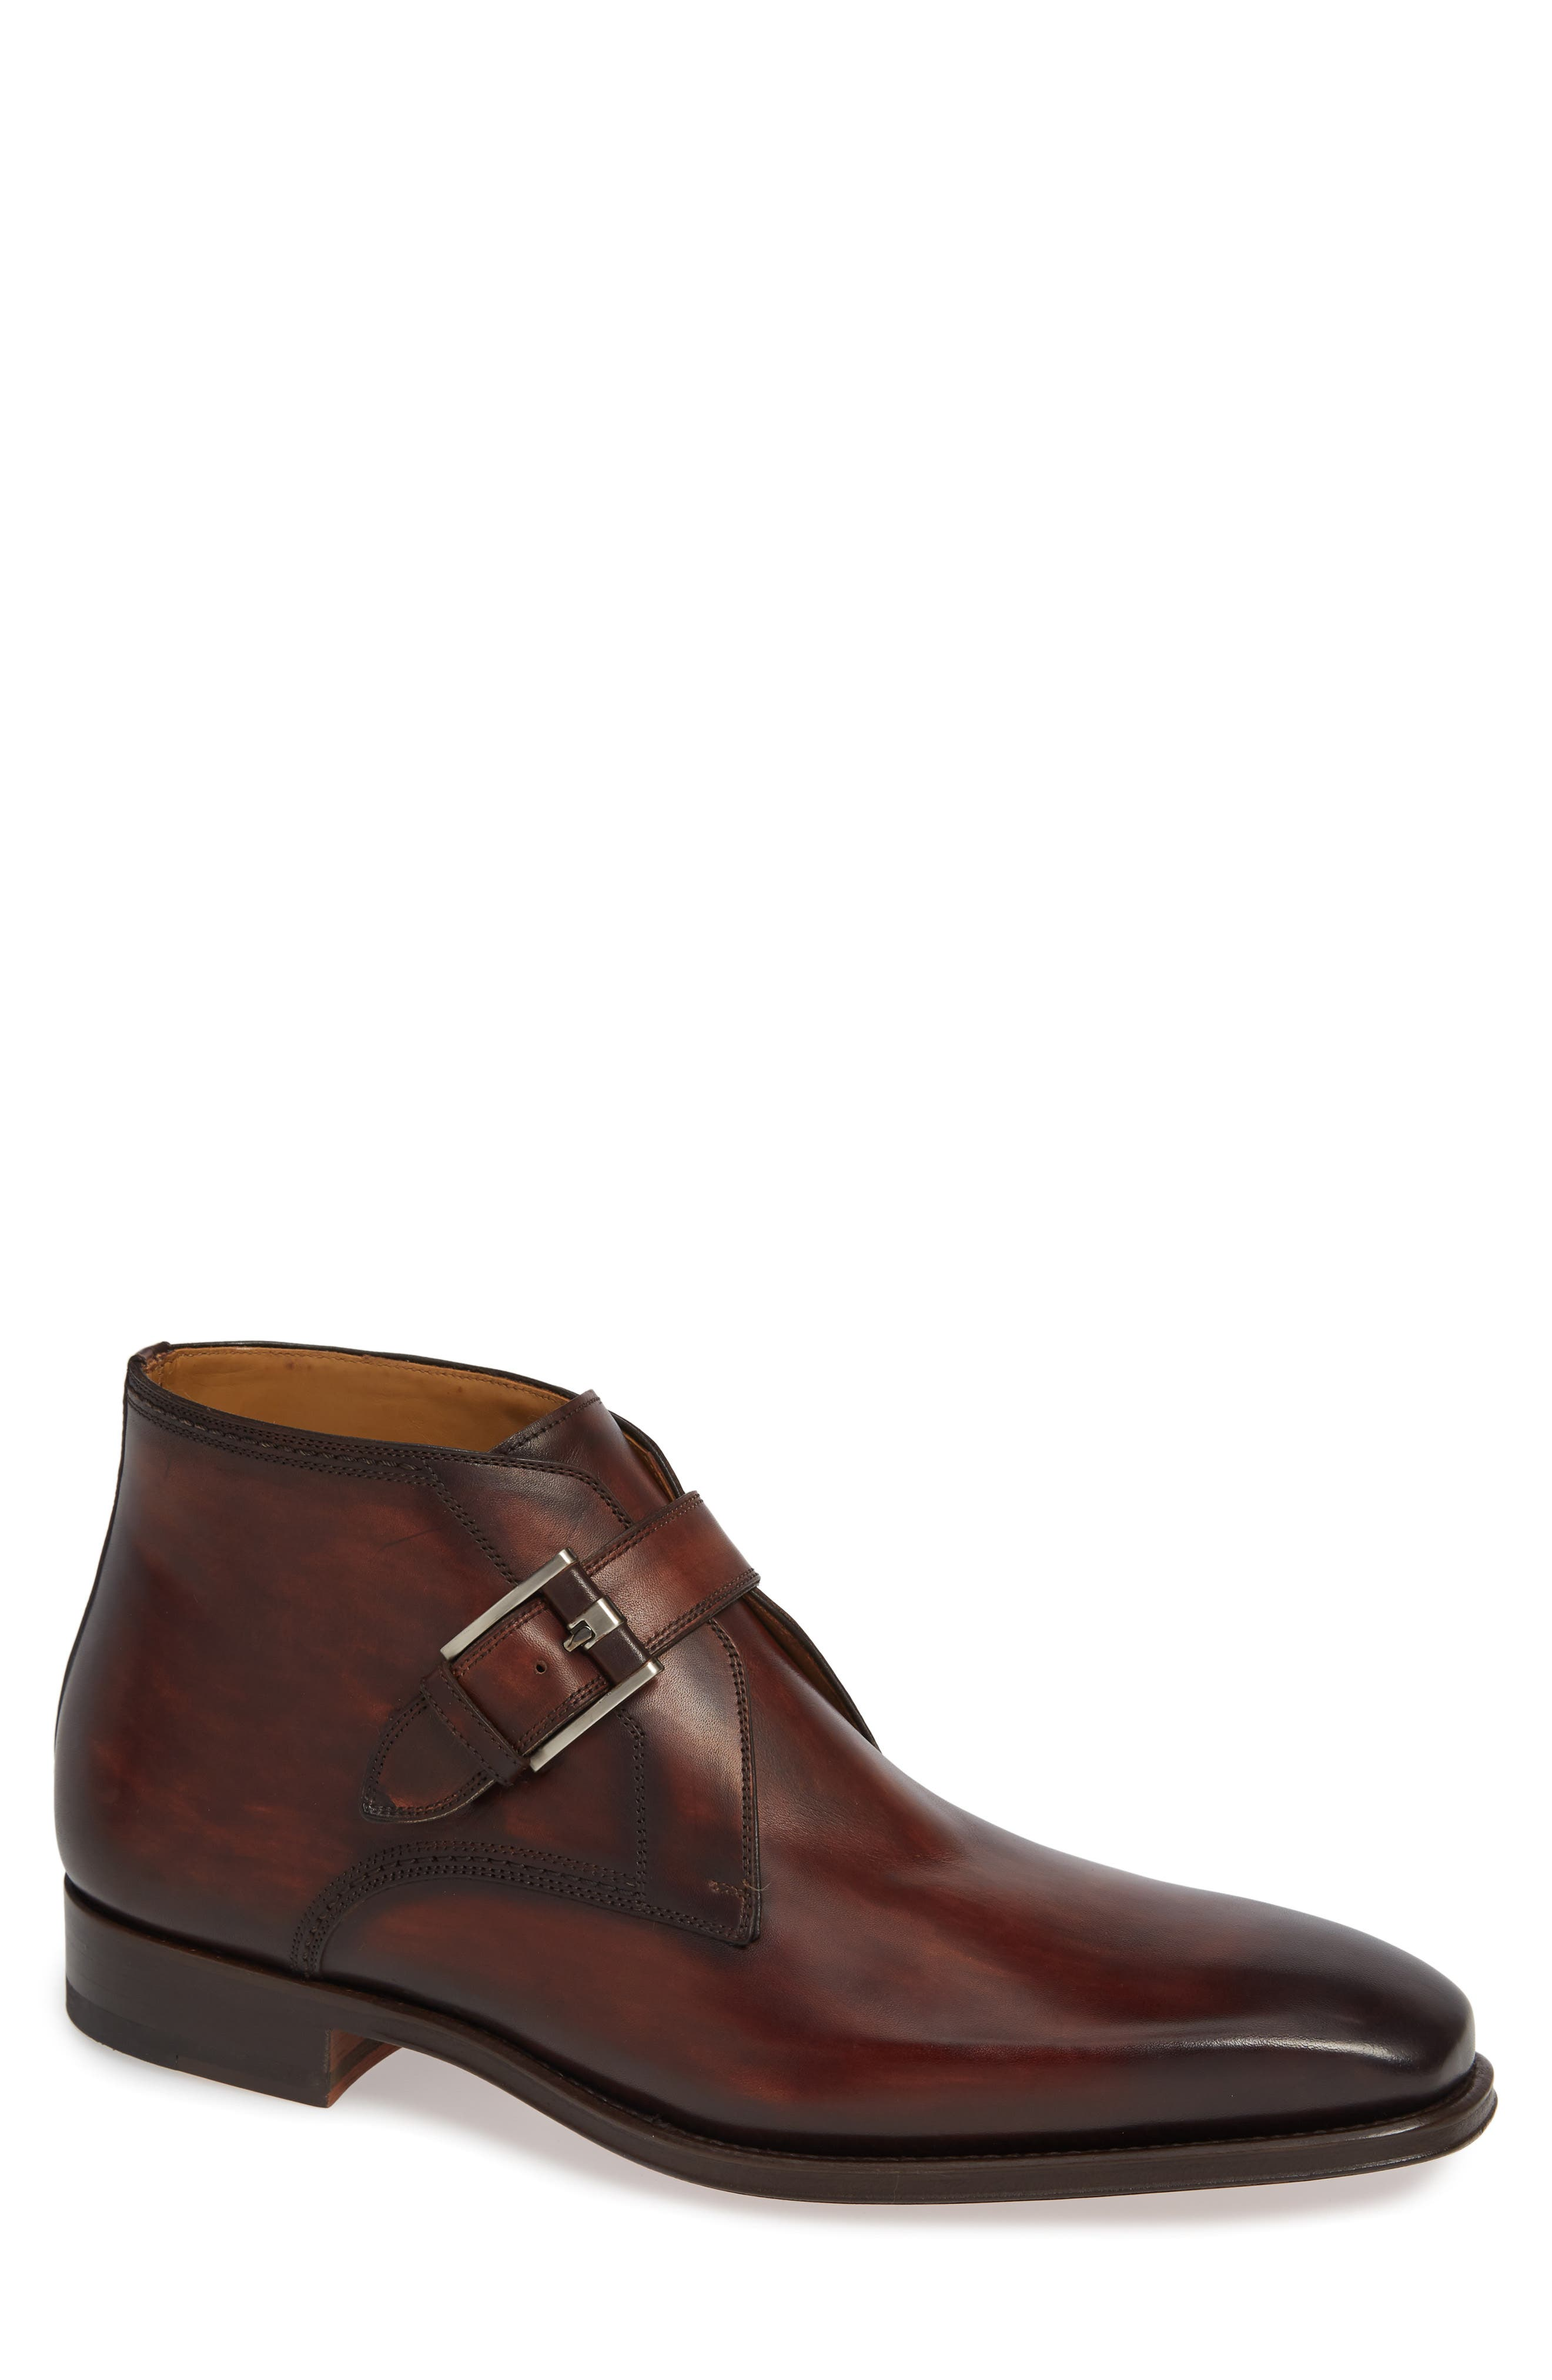 MAGNANNI,                             Luka Monk Strap Boot,                             Main thumbnail 1, color,                             MID BROWN LEATHER